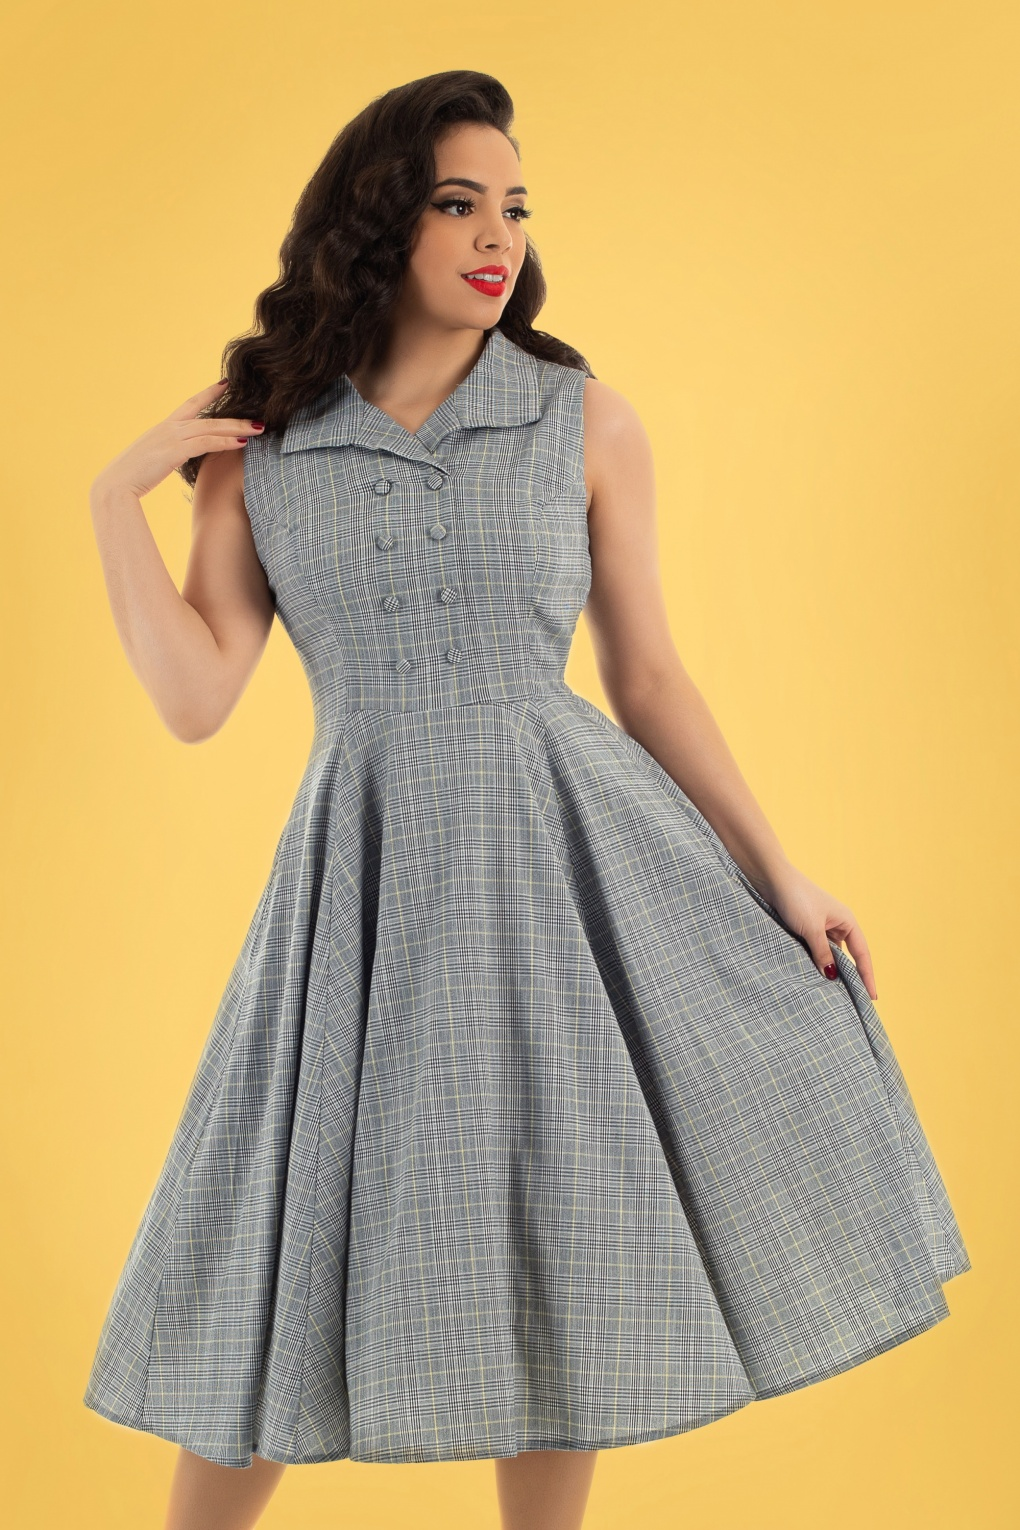 Modest, Mature, Mrs. Vintage Dresses – 20s, 30s, 40s, 50s, 60s 50s Christine Check Swing Dress in Grey £43.35 AT vintagedancer.com